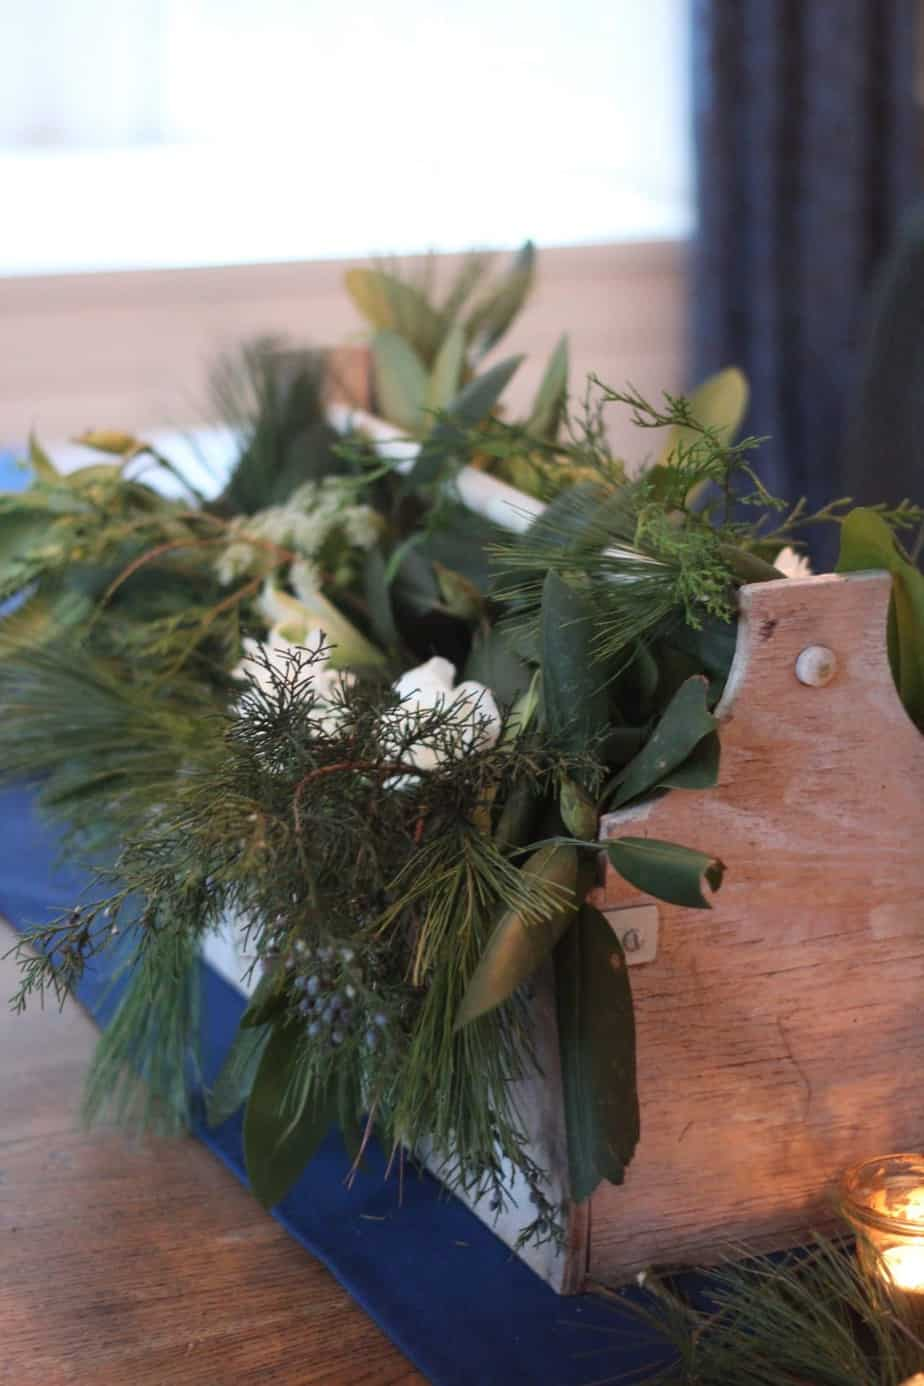 A simple centerpiece of fresh greens and flowers tucked into vases inside a wooden toolbox.